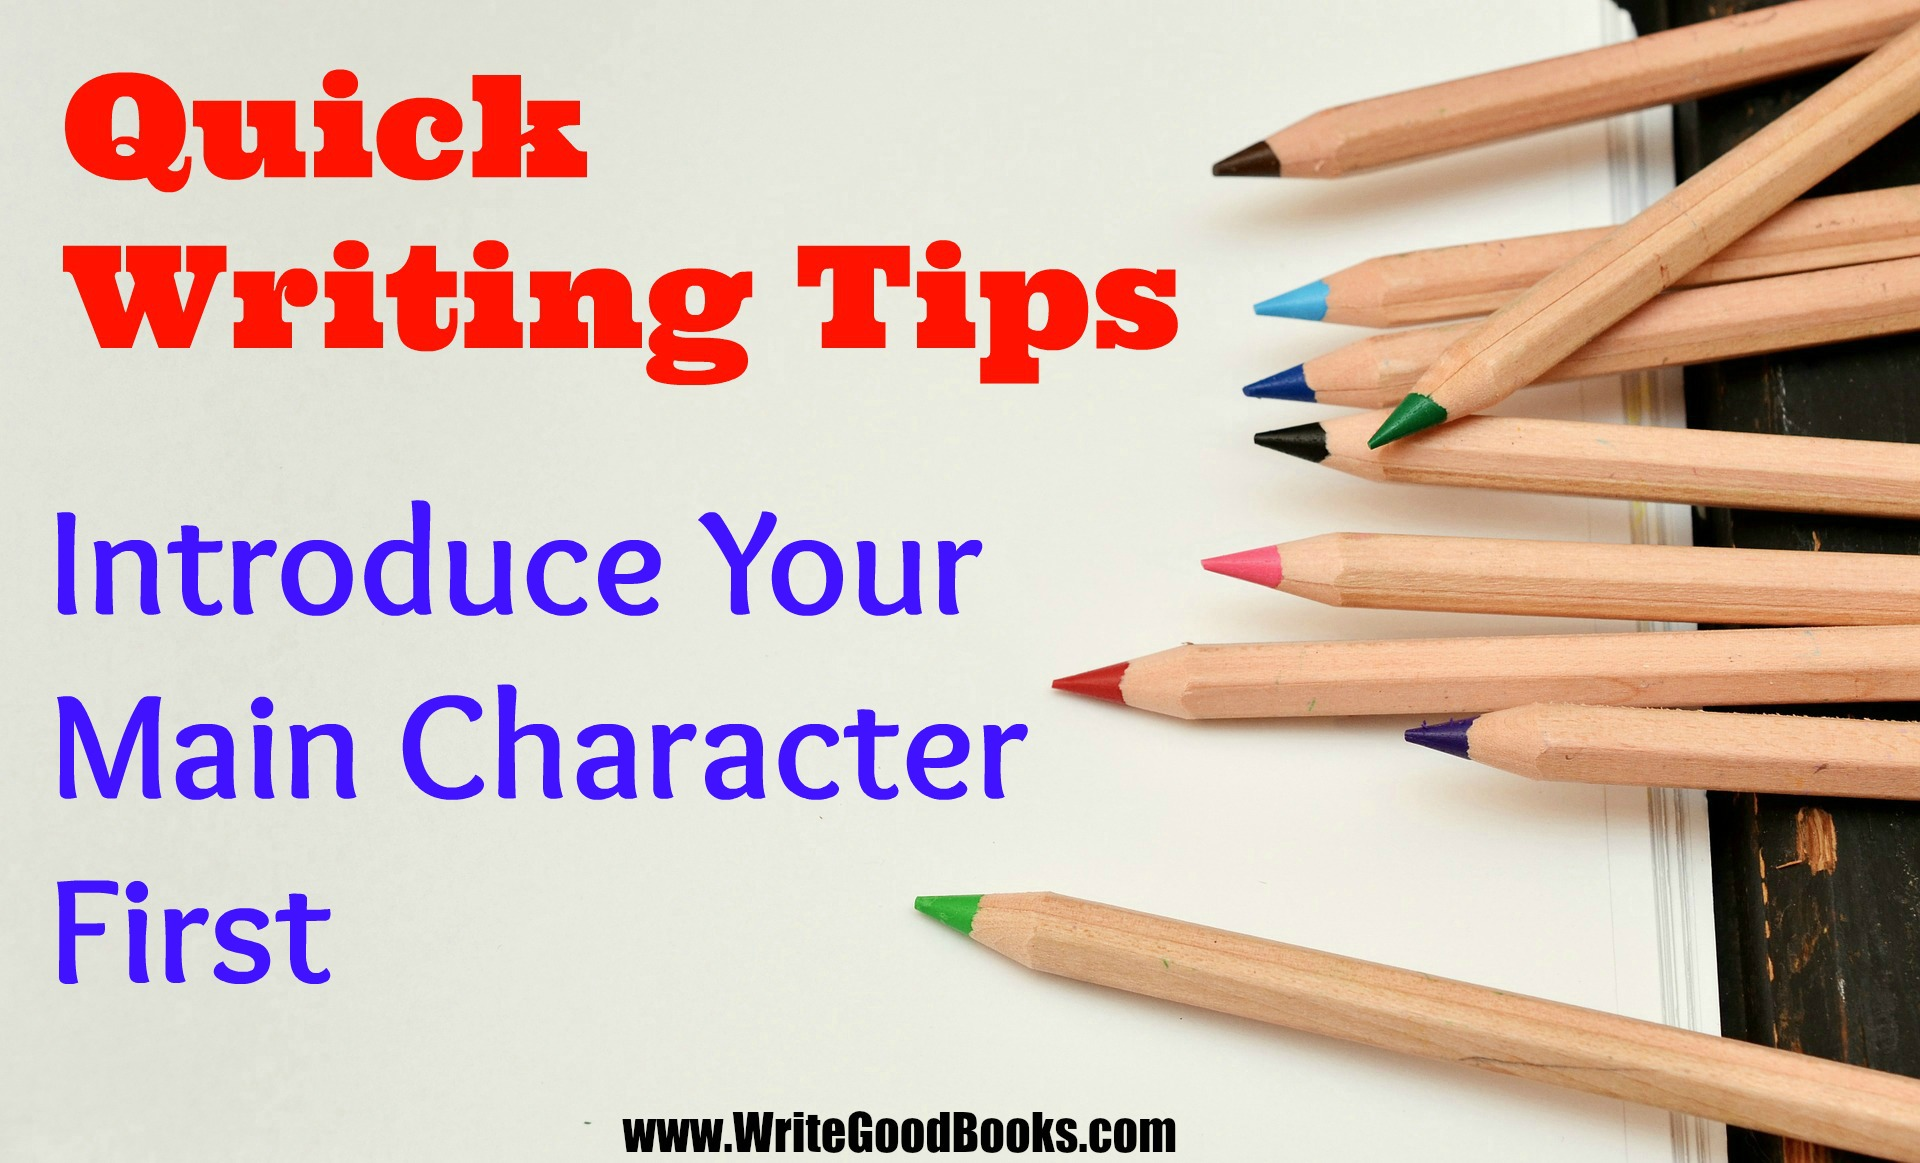 Introduce your main character before anything else.